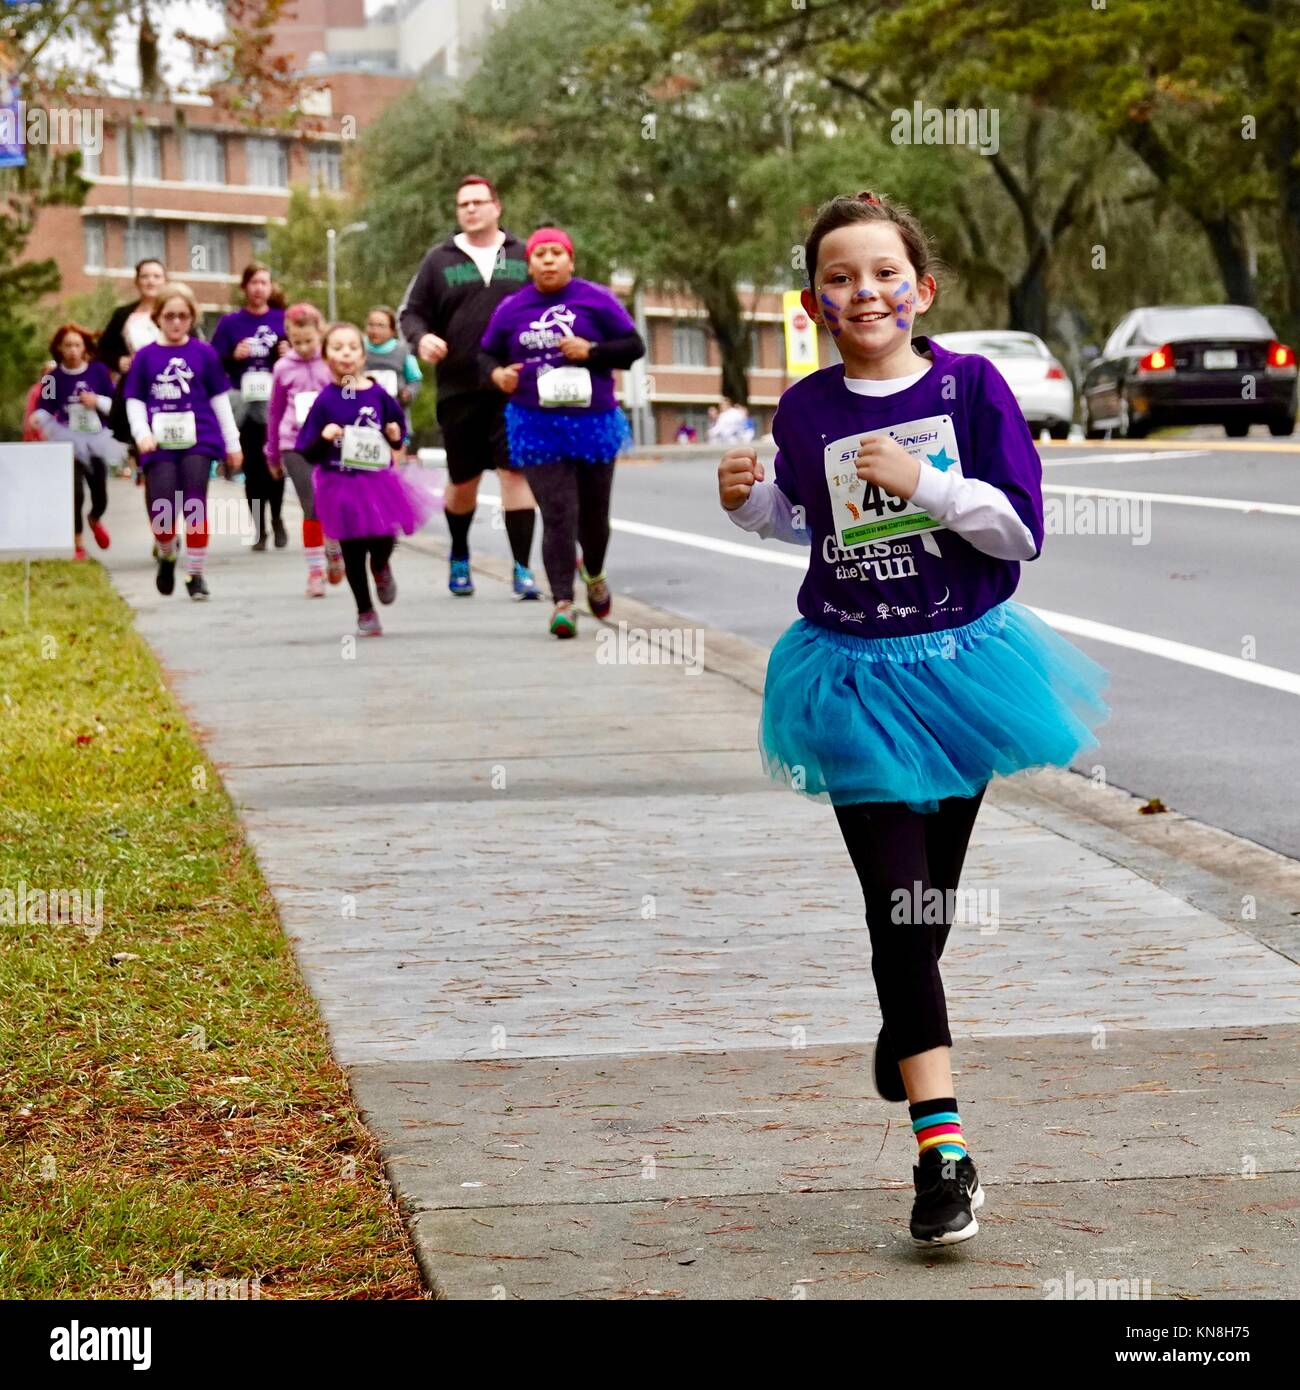 young-girl-racing-ahead-of-a-group-of-ru